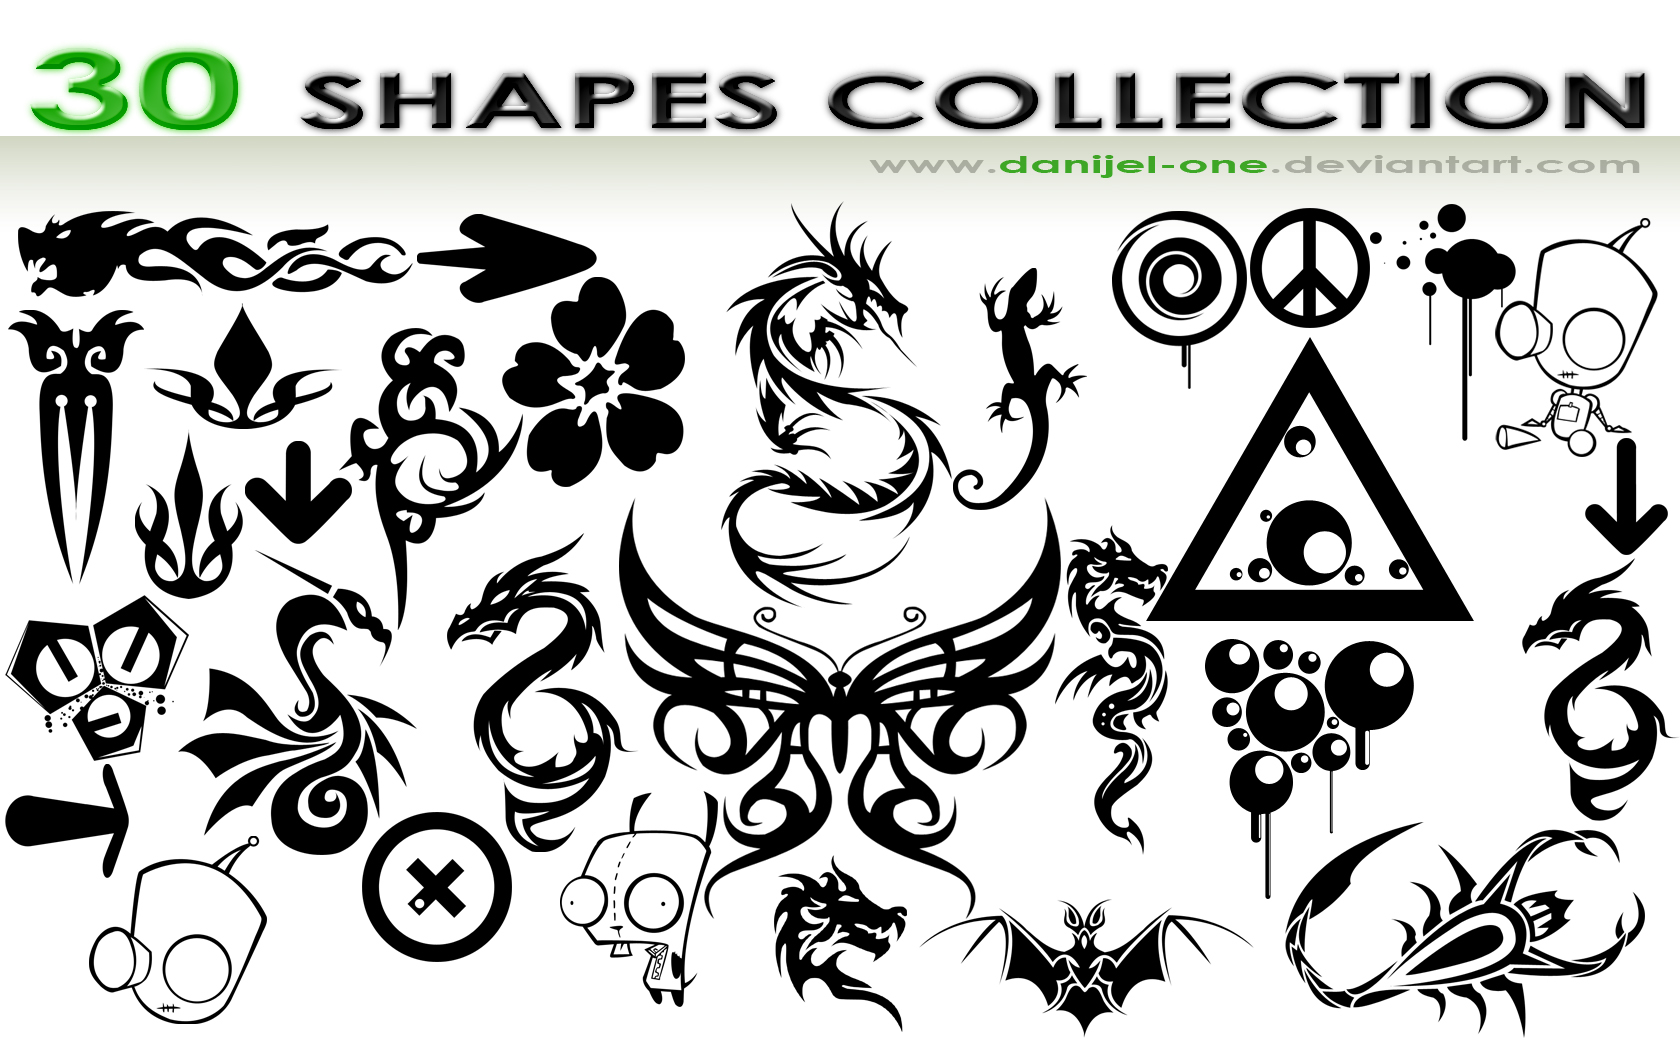 10 Free Shapes For Photoshop CS5 Images